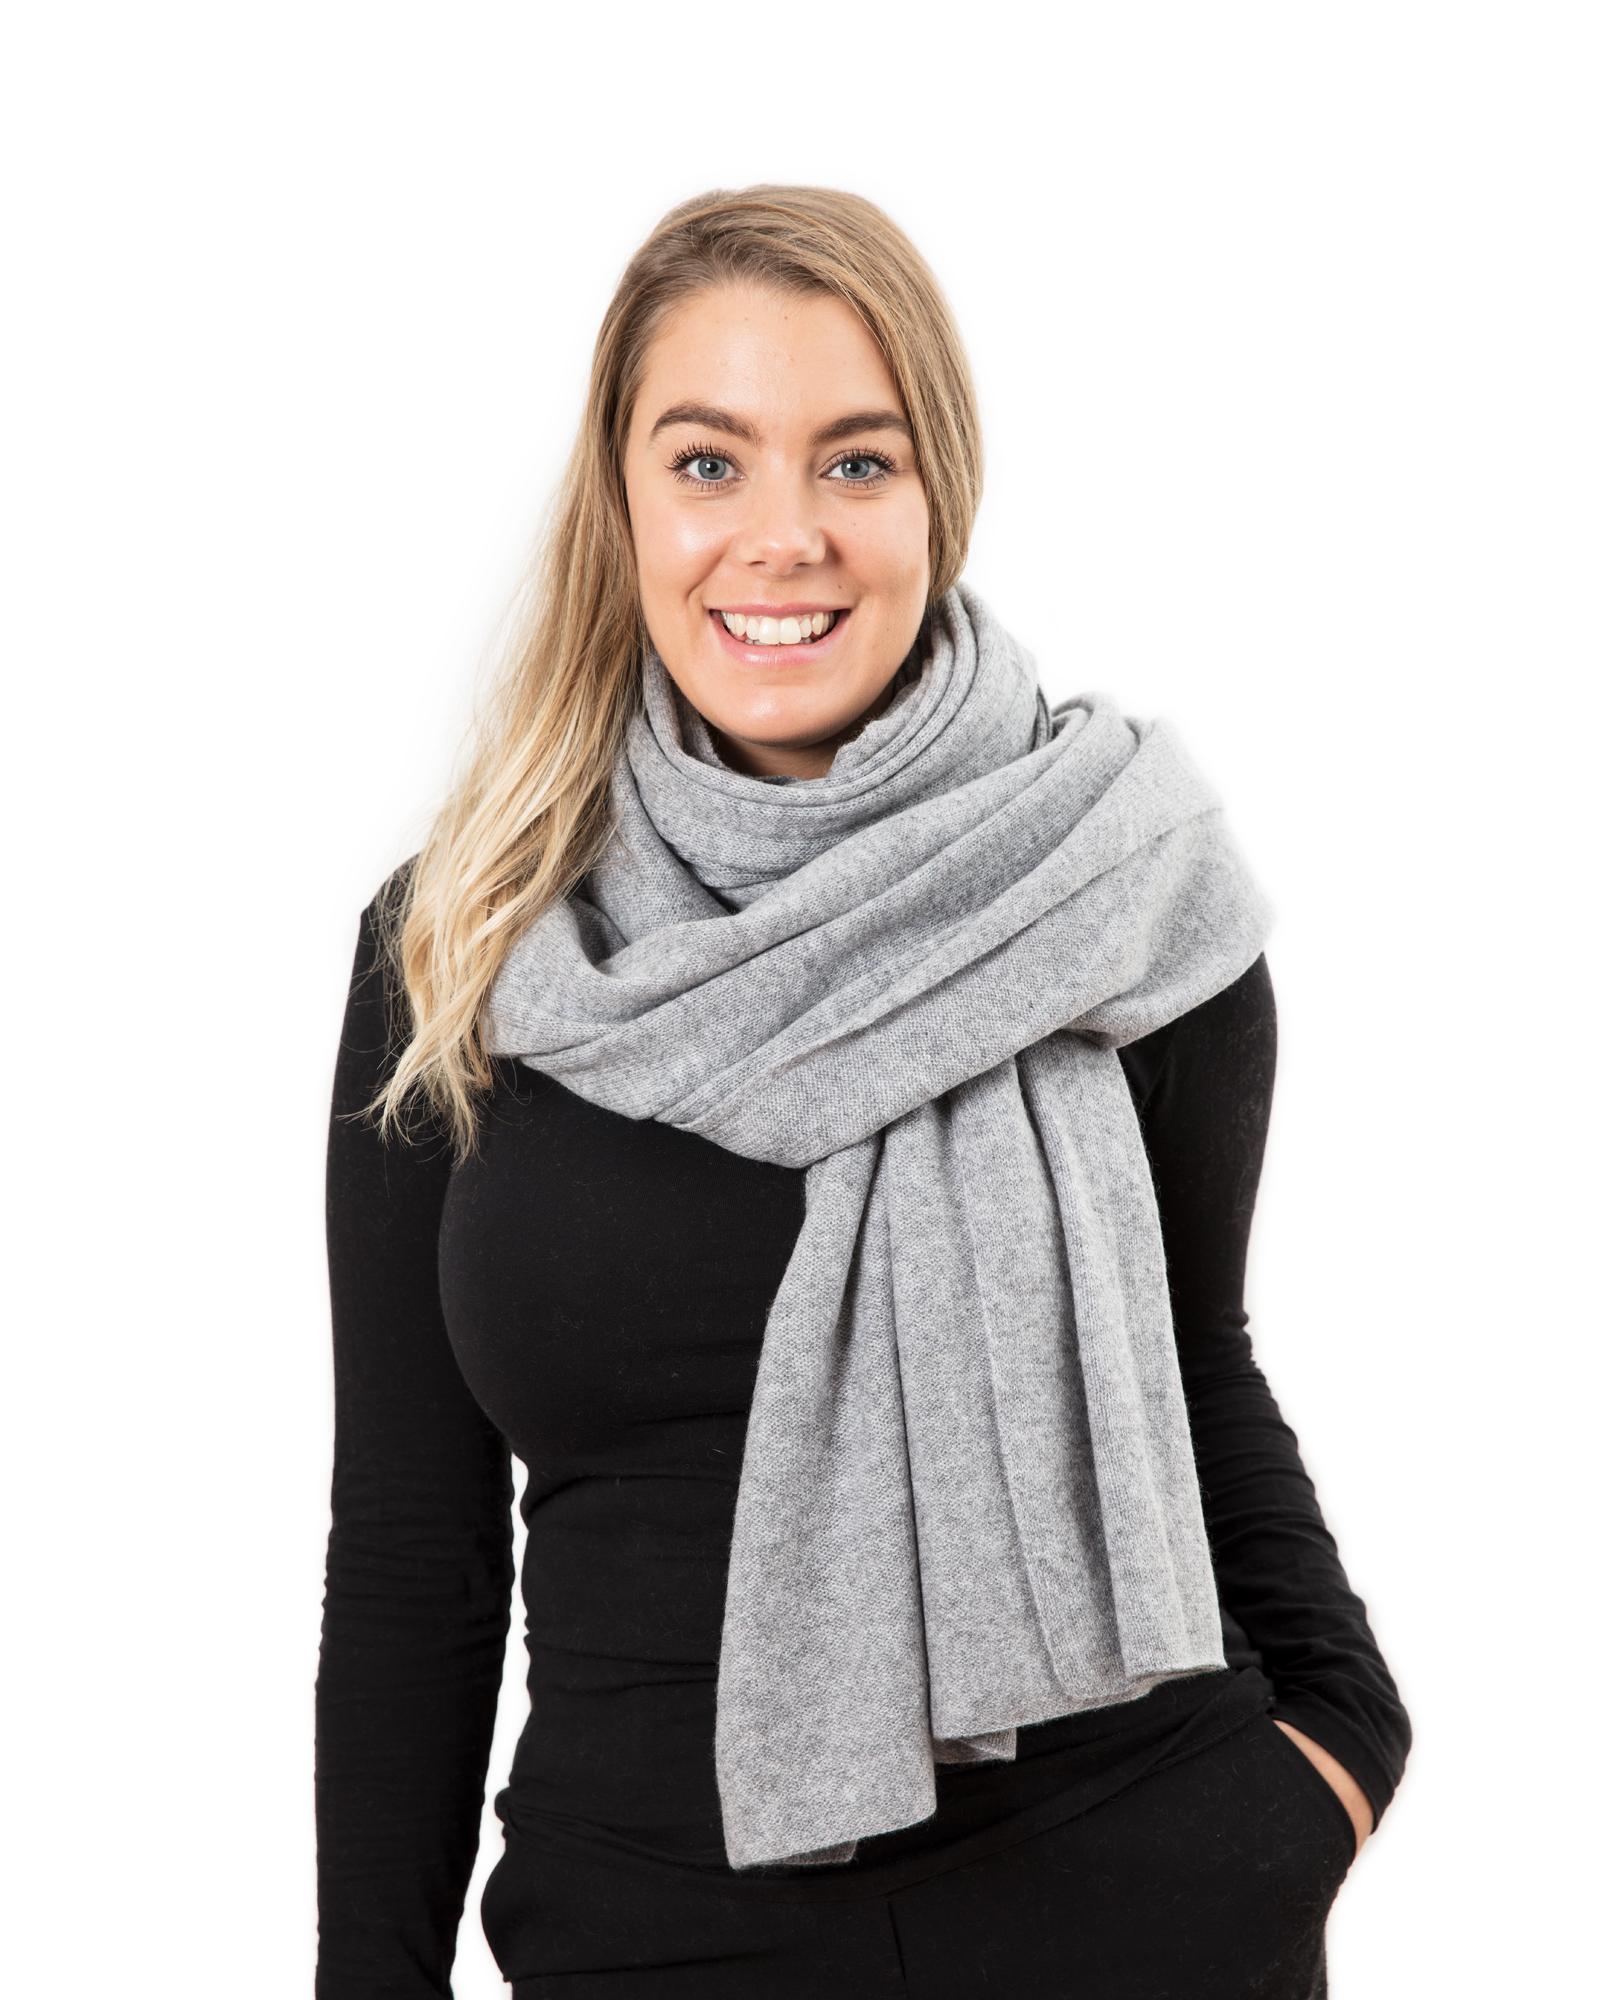 Lisa Yang Stor sjal Grey 100% Cashmere - DAYSTYLE d1b570e6c0c4c